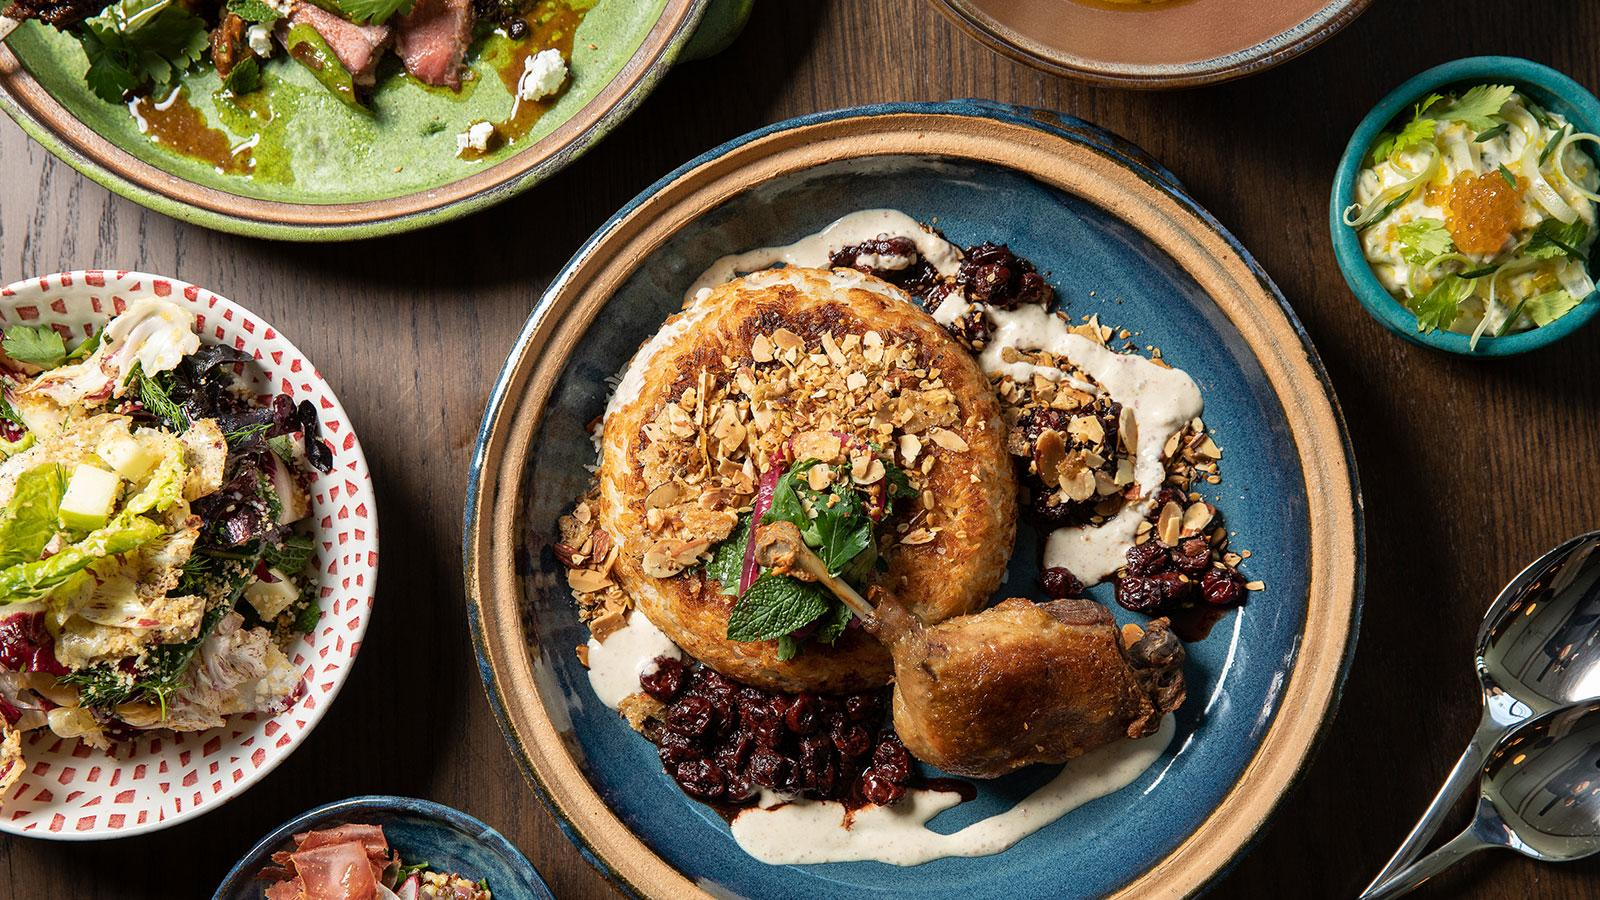 Turning Tables: Boka Restaurant Group Opens Three New Concepts, One with Chef Stephanie Izard